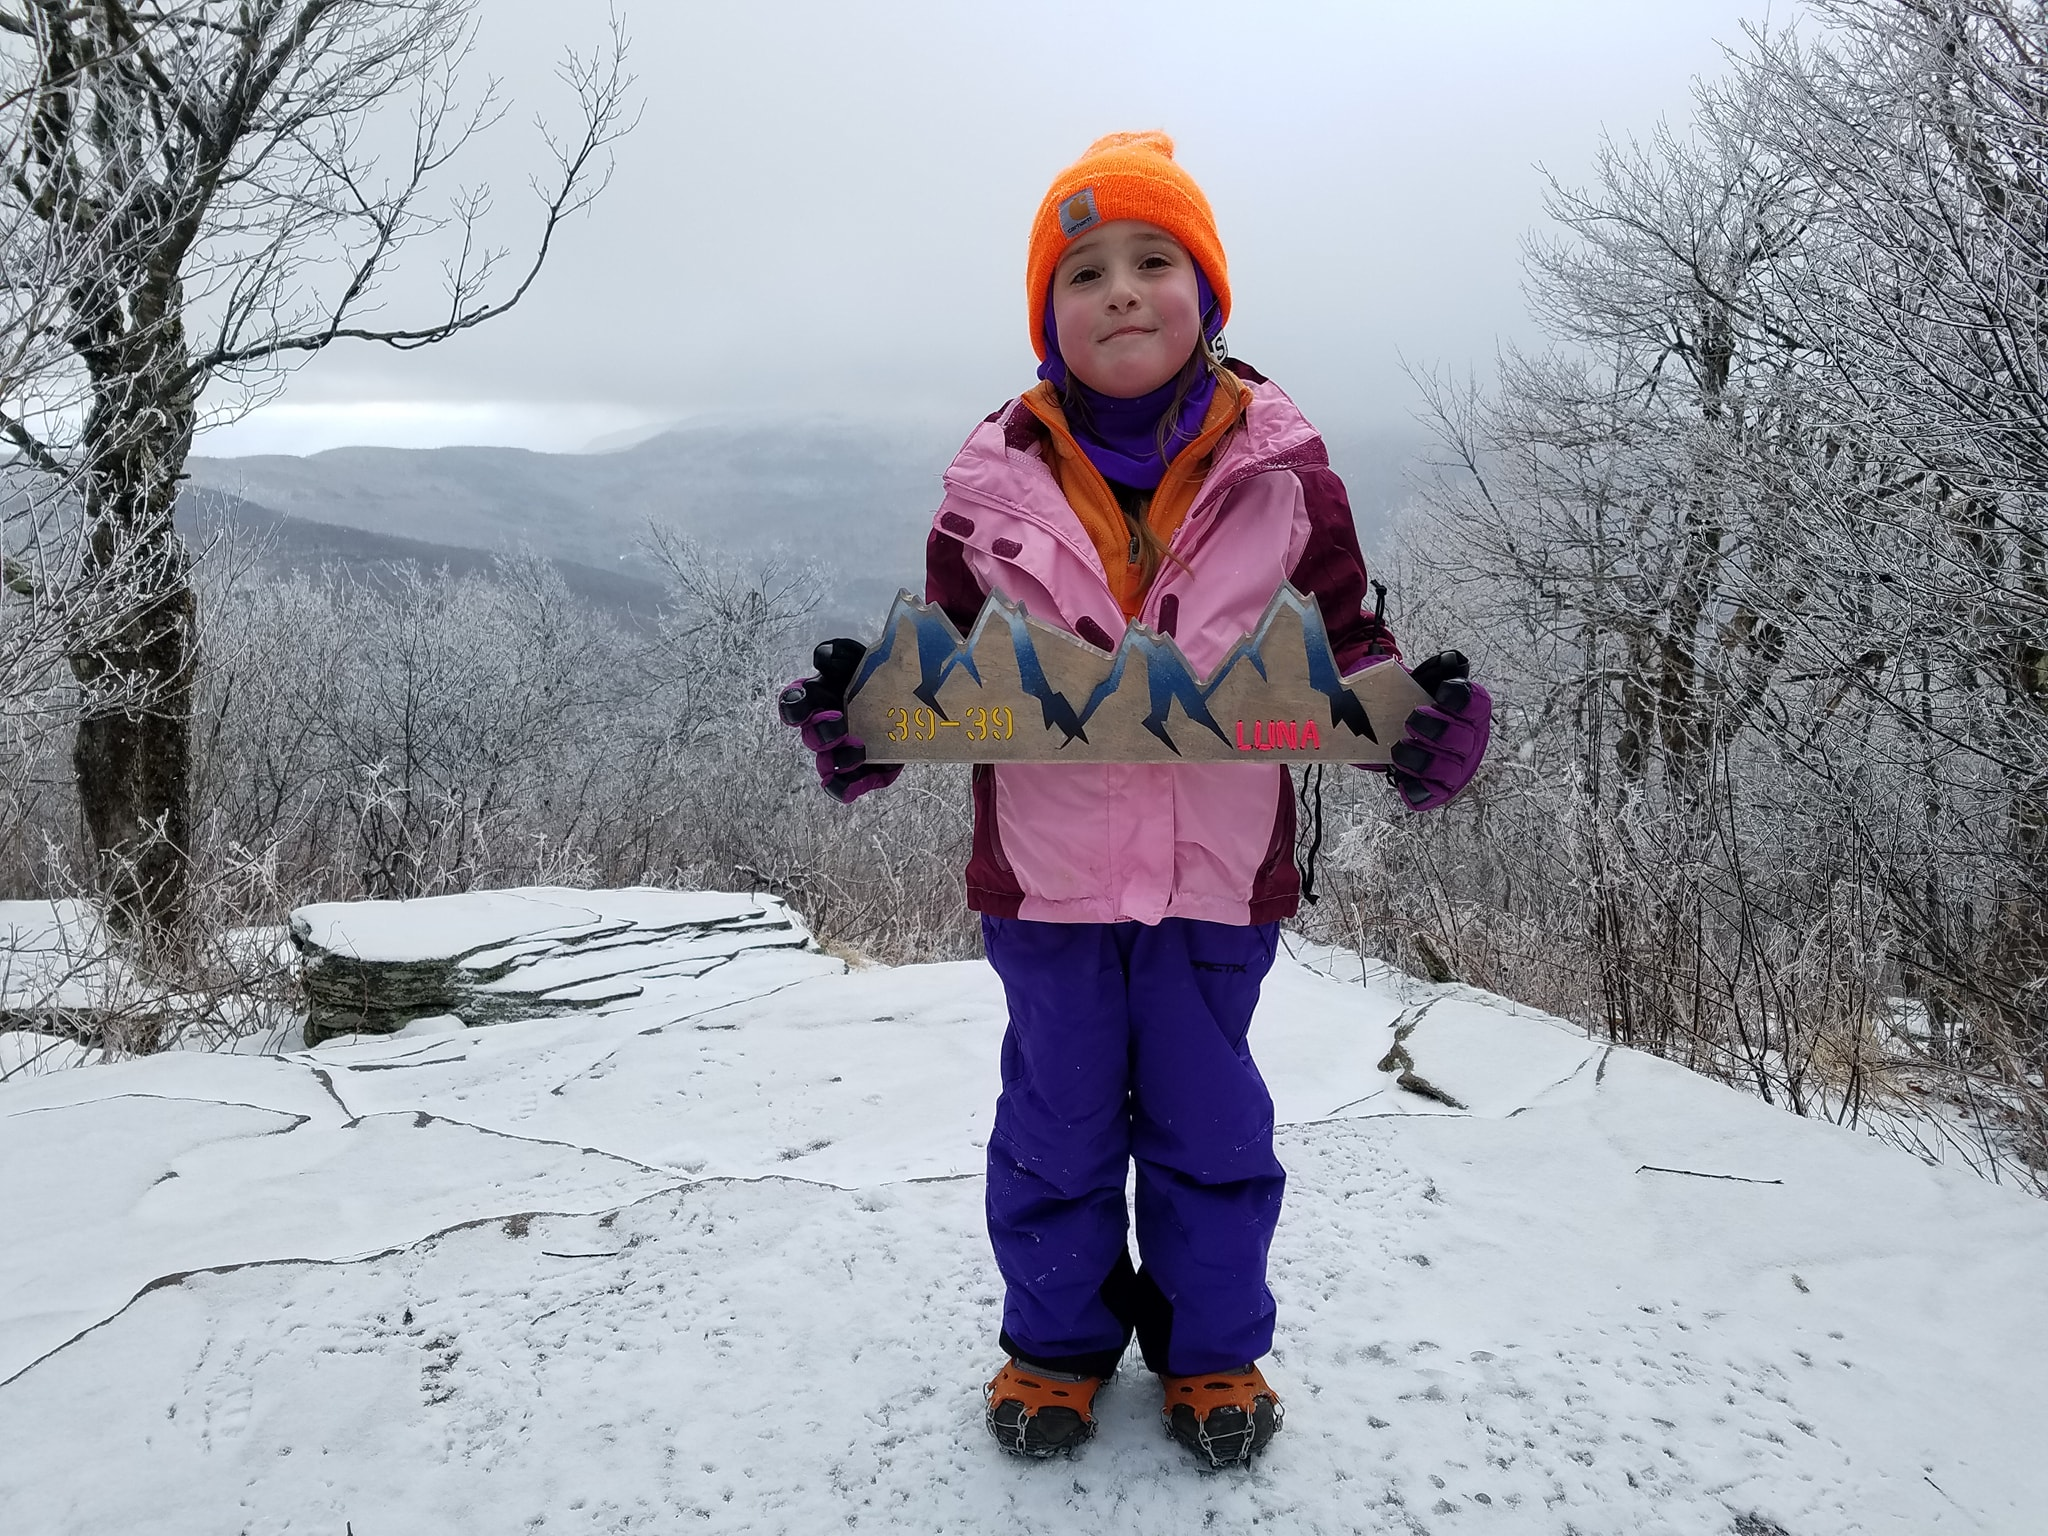 Princess of the Mountain: 4-year-old hikes 35 highest Catskill peaks